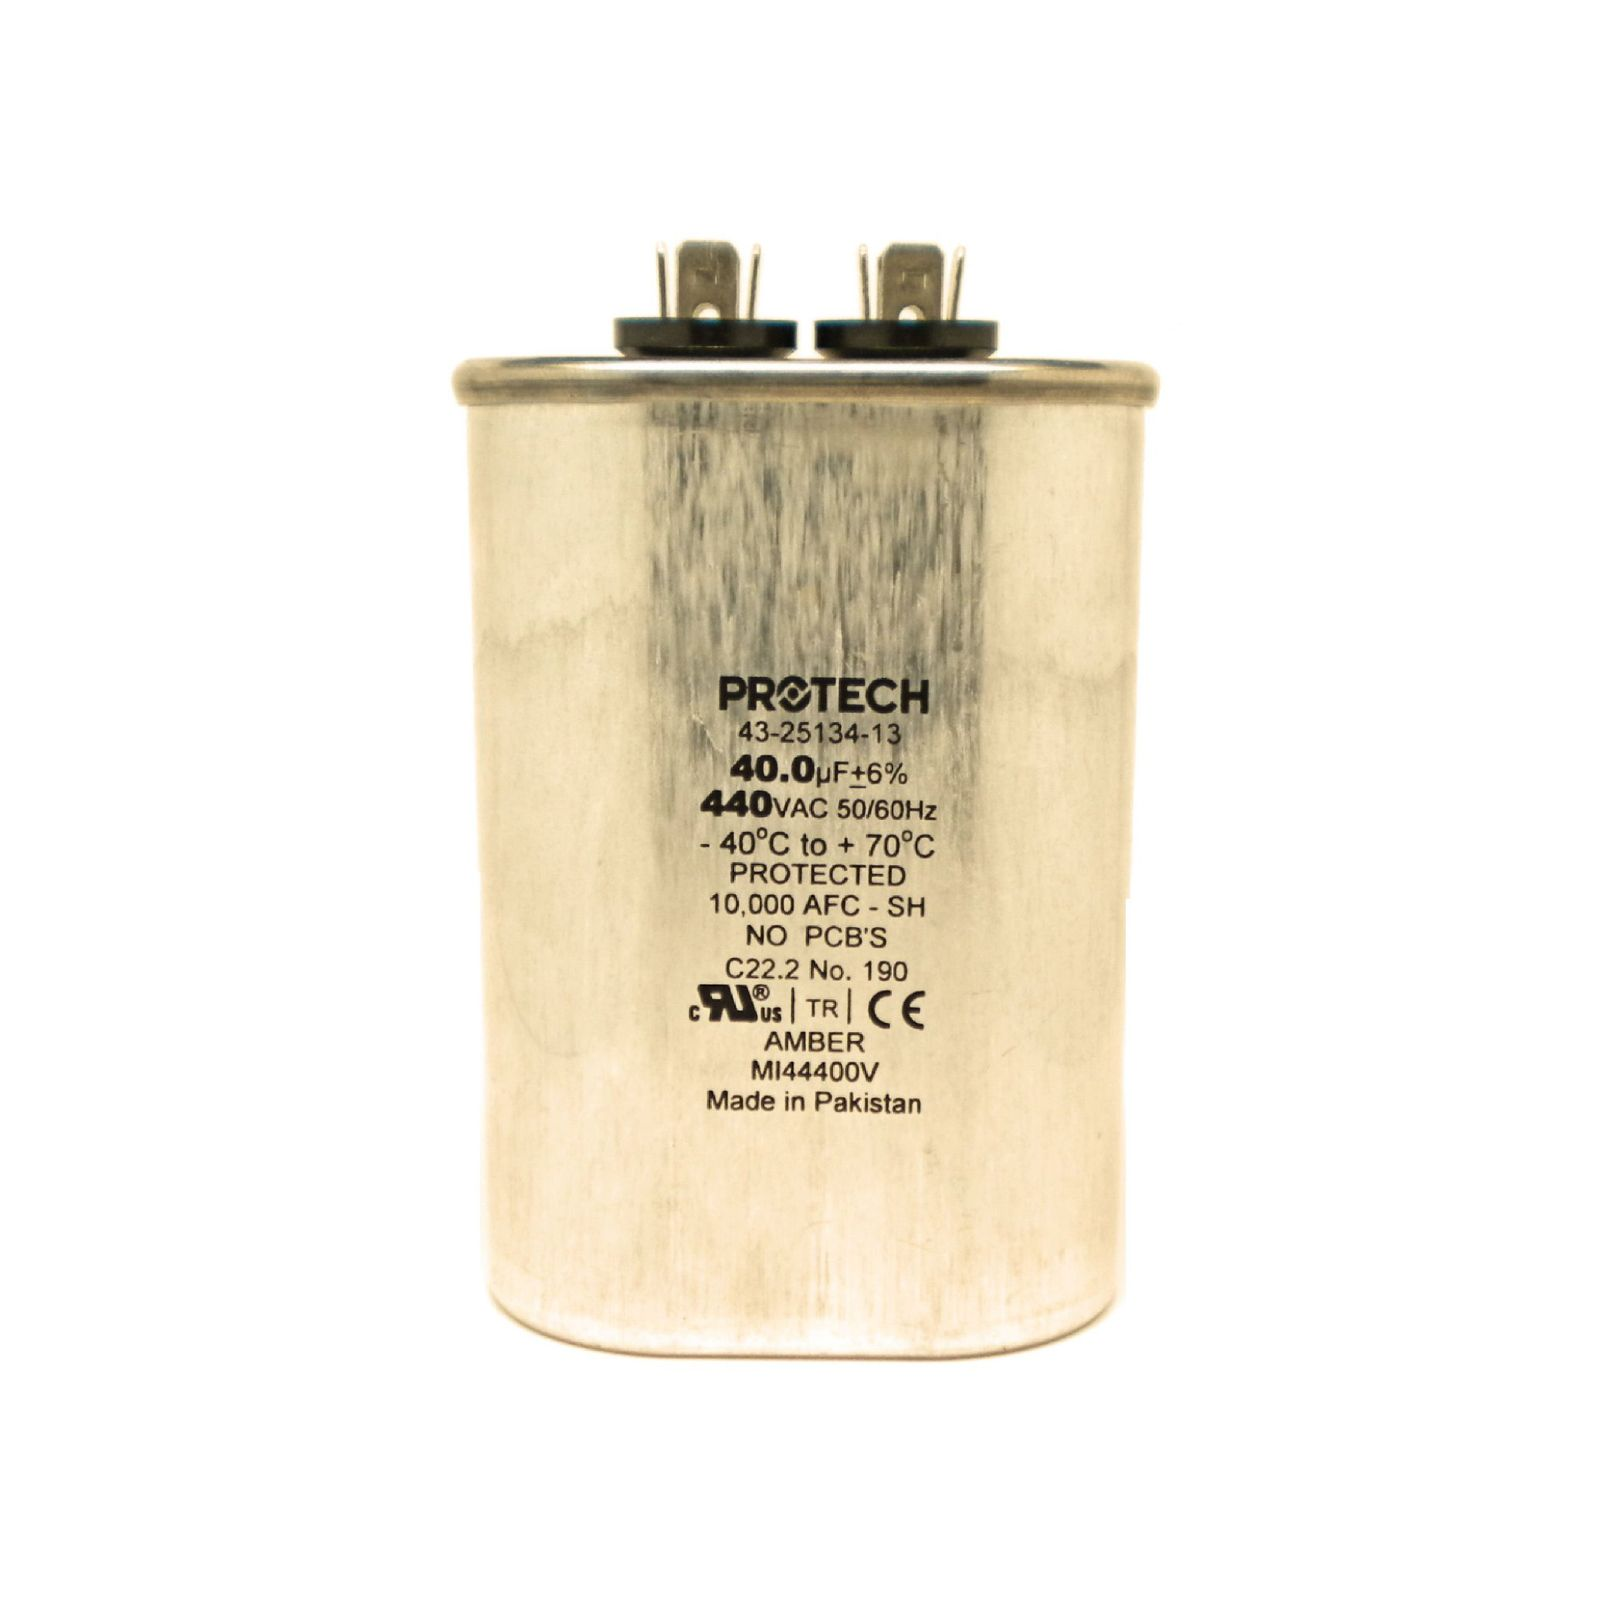 PROTECH 43-25134-13 - Capacitor - 40/440 Single Oval